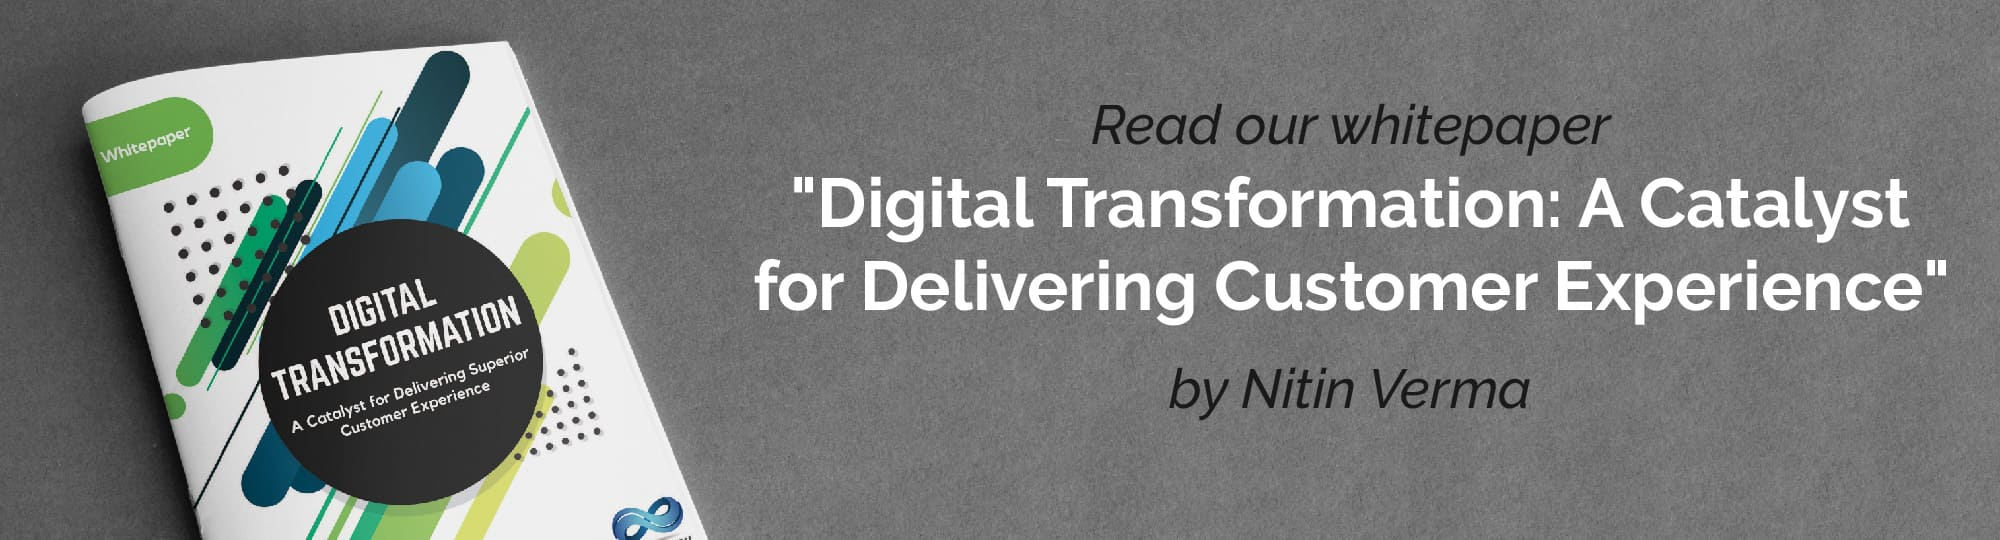 Digital Transformation and customer experience